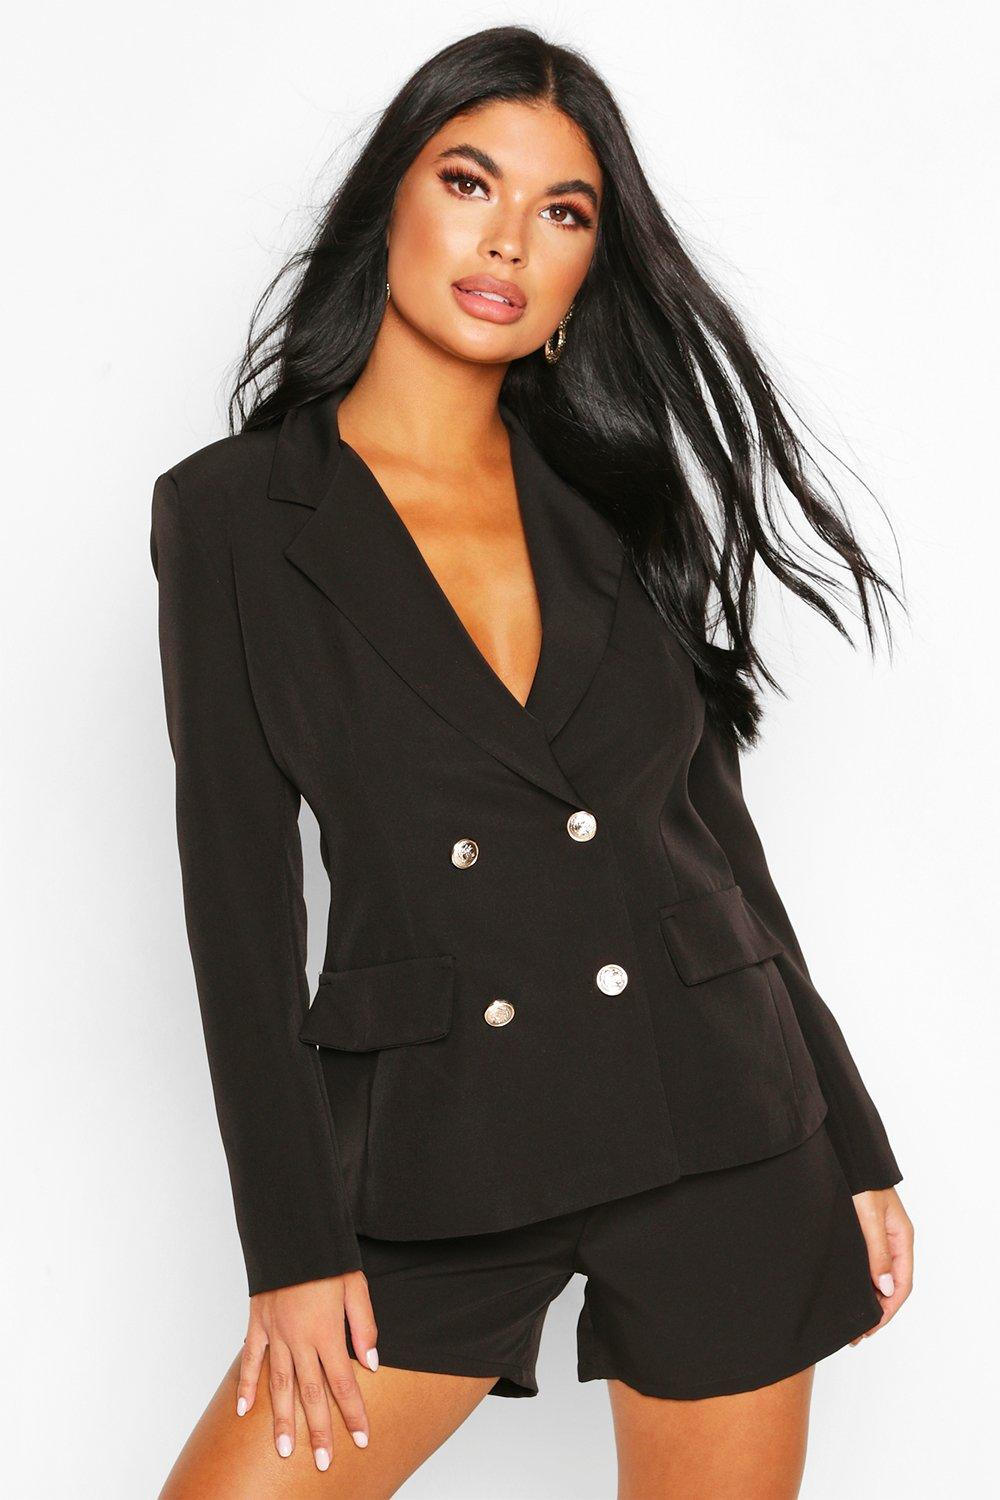 boohoo Womens Petite Double Breasted Blazer - Black - 8, Black